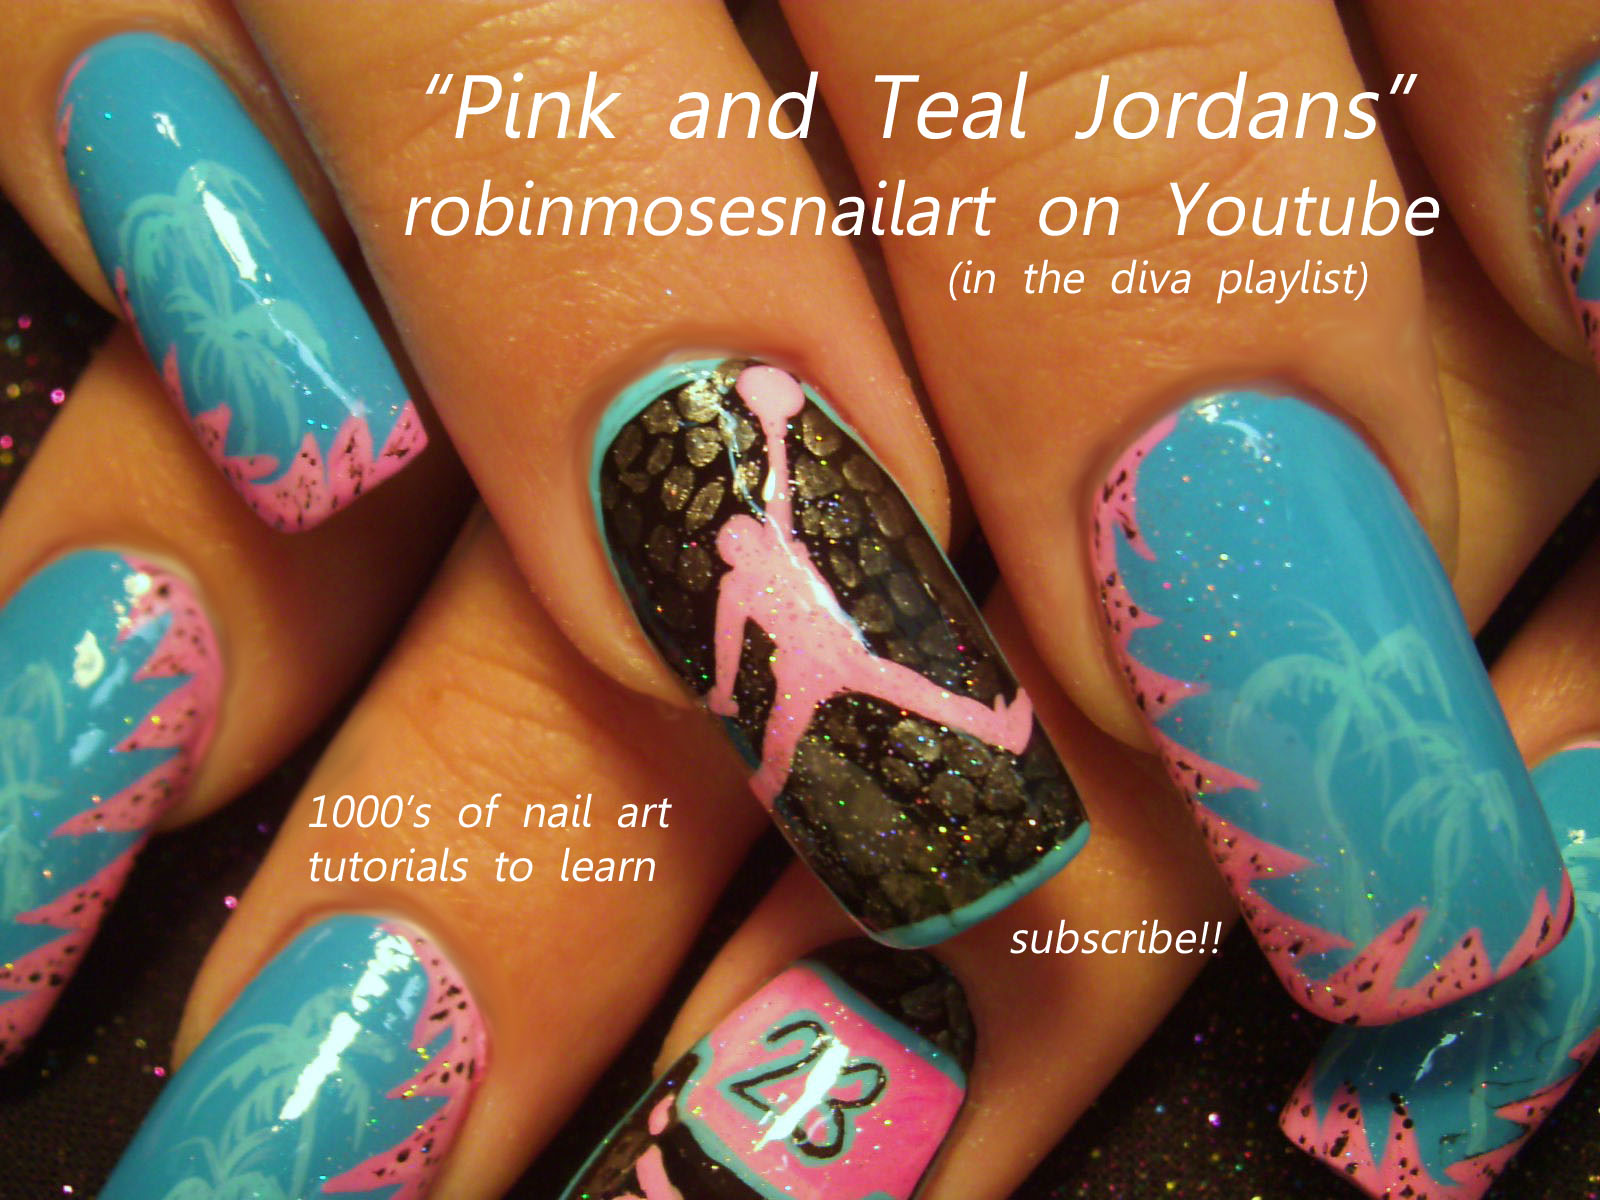 Nail art design air jordan nails michael jordan nails nike air air jordan nails michael jordan nails nike air nails tennis shoe nail pink and teal nails scene nails old school nails basketball nails sports nails prinsesfo Choice Image